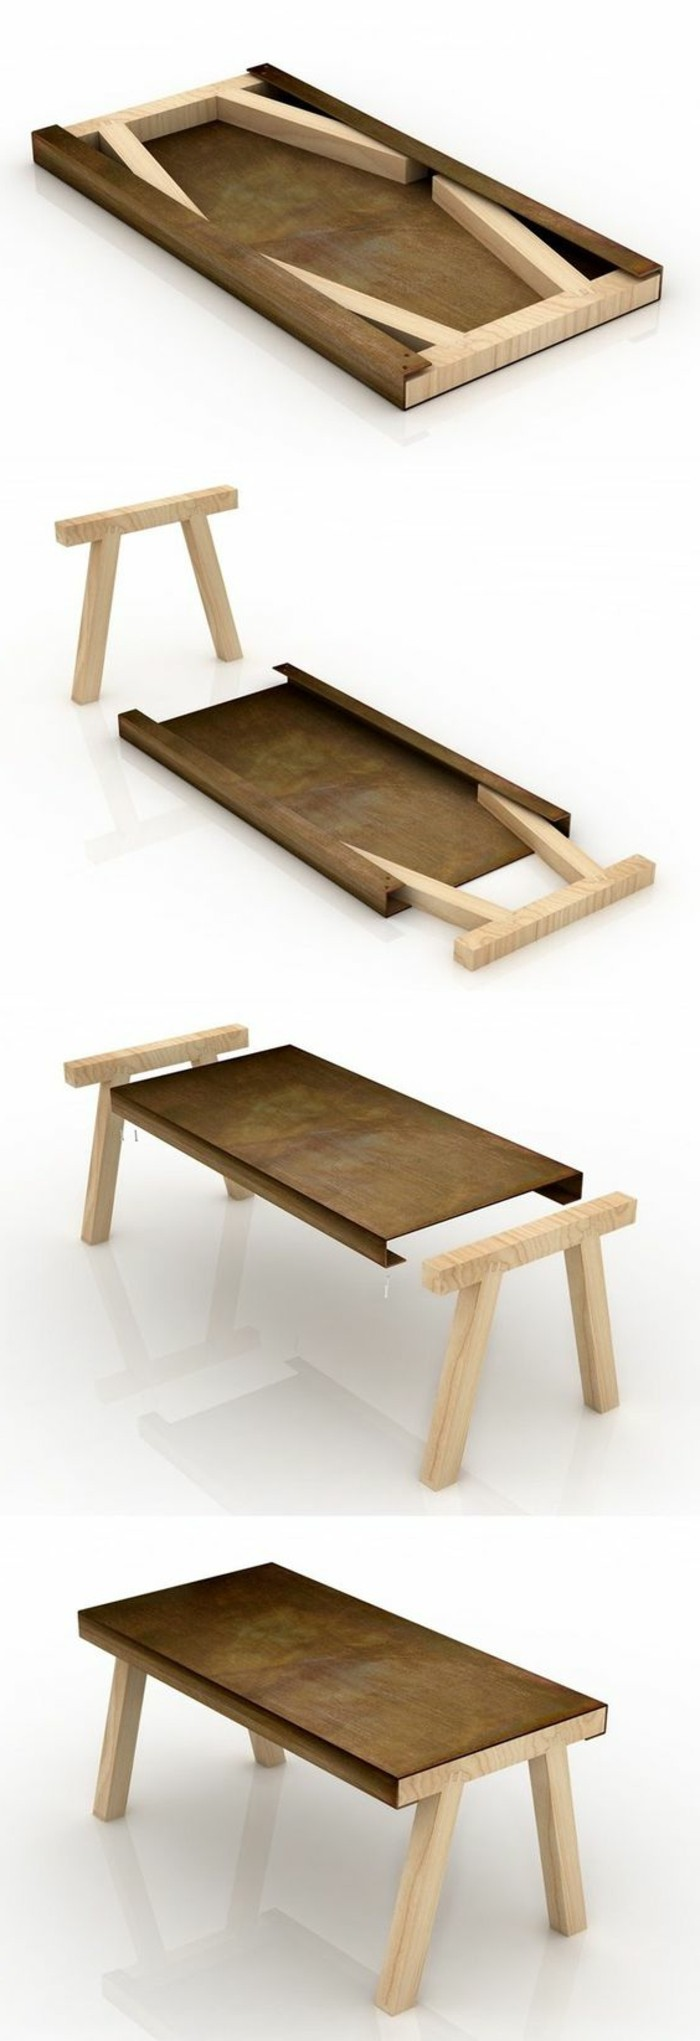 Table basse relevable petit format table pliante en bois - Table basse relevable extensible conforama ...